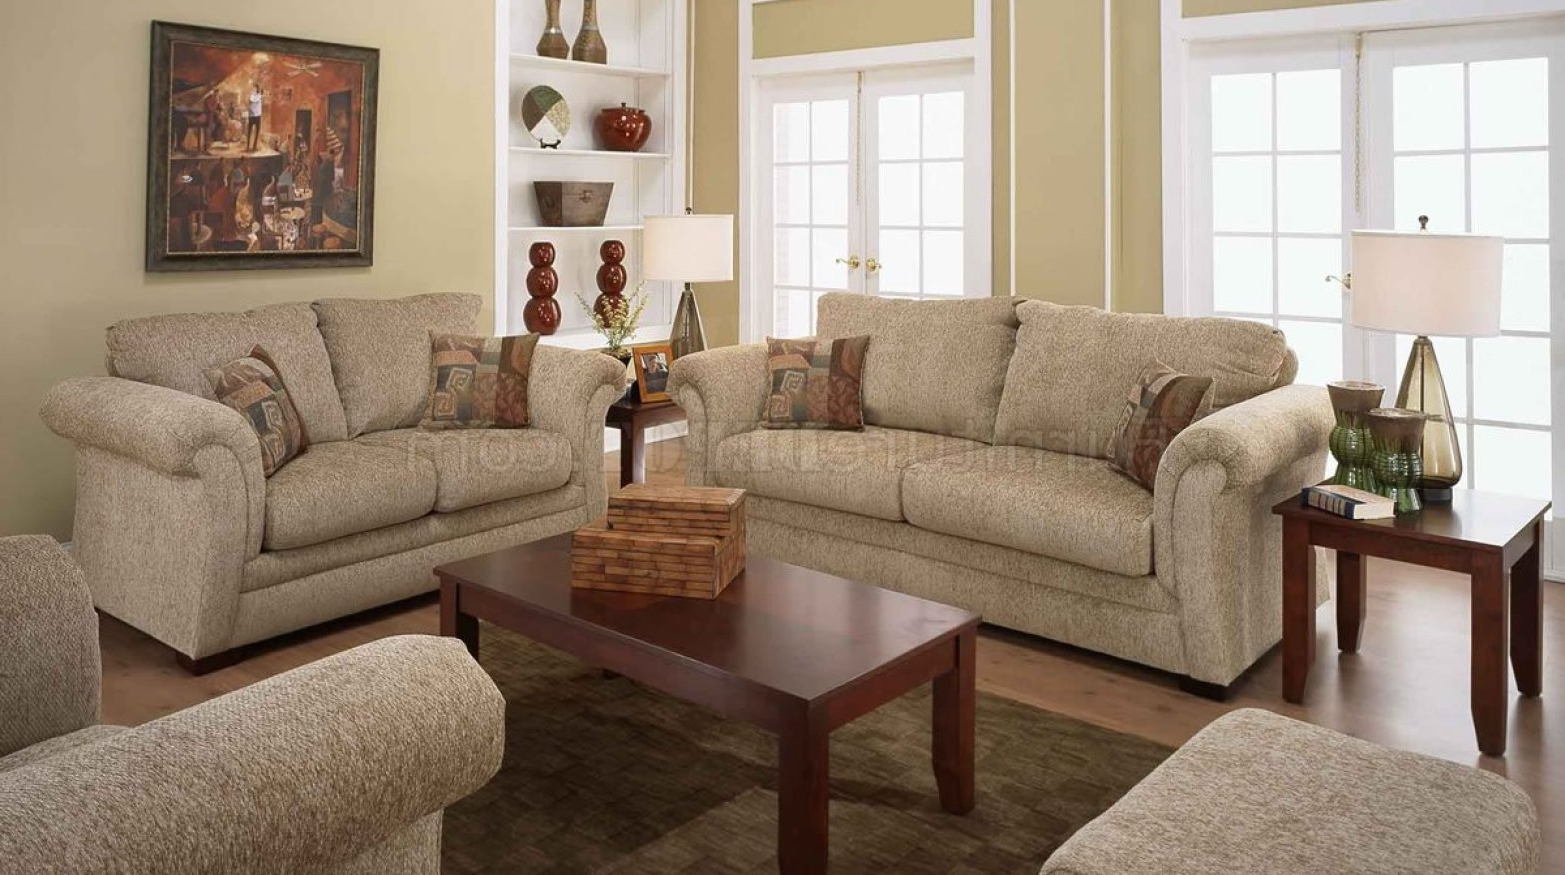 Casual Sofas And Chairs For Newest Chairs : Reclining Sectional Sofas Amazing Casual Sofas And Chairs (View 17 of 20)